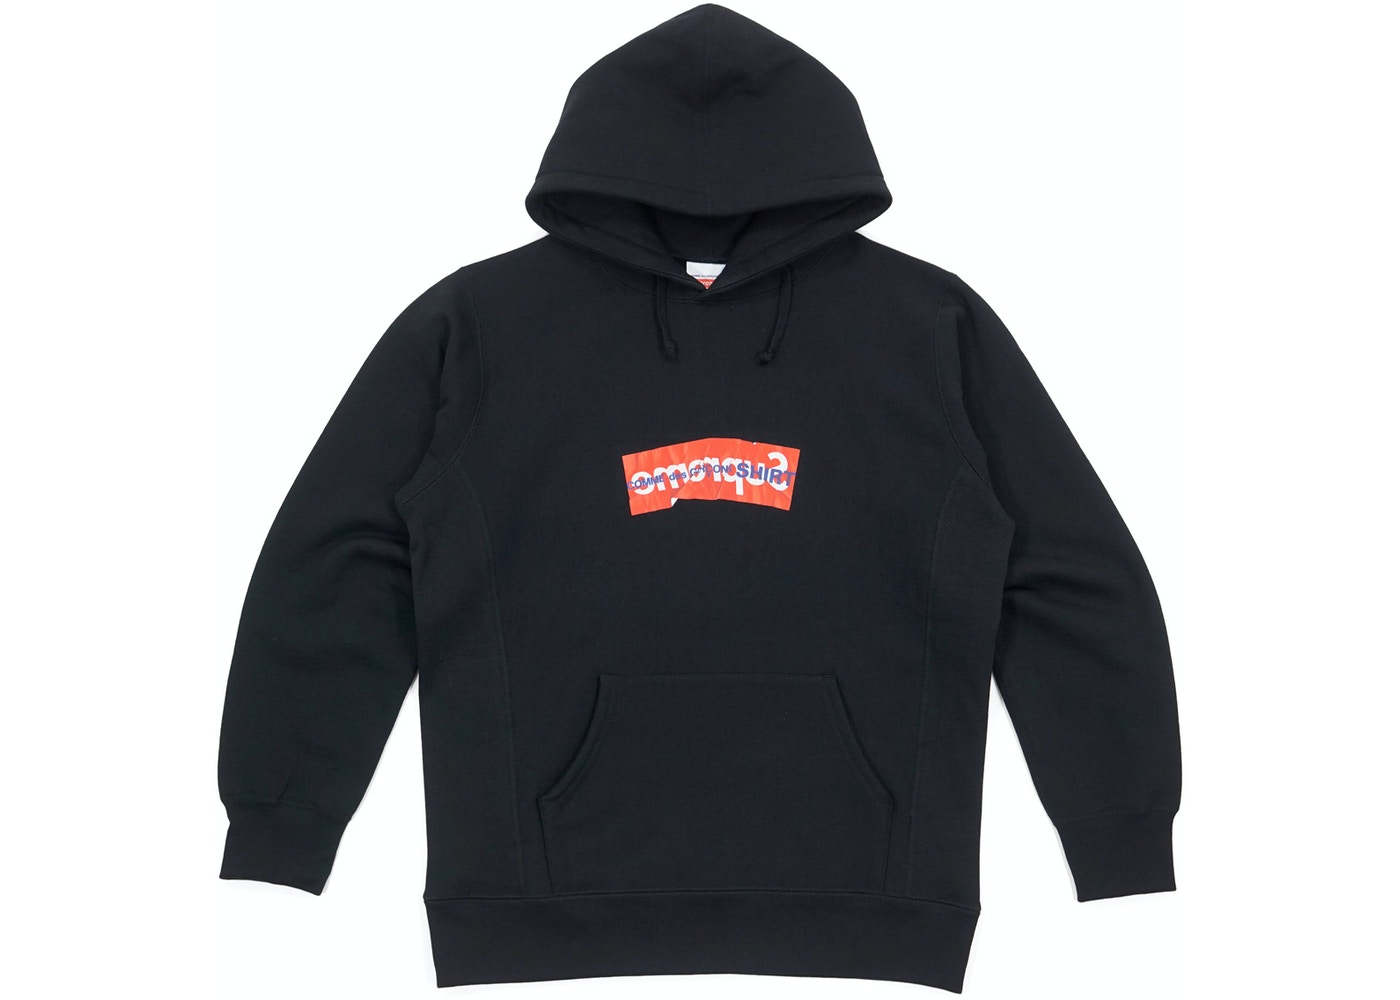 supreme comme des garcons shirt box logo hooded sweatshirt. Black Bedroom Furniture Sets. Home Design Ideas